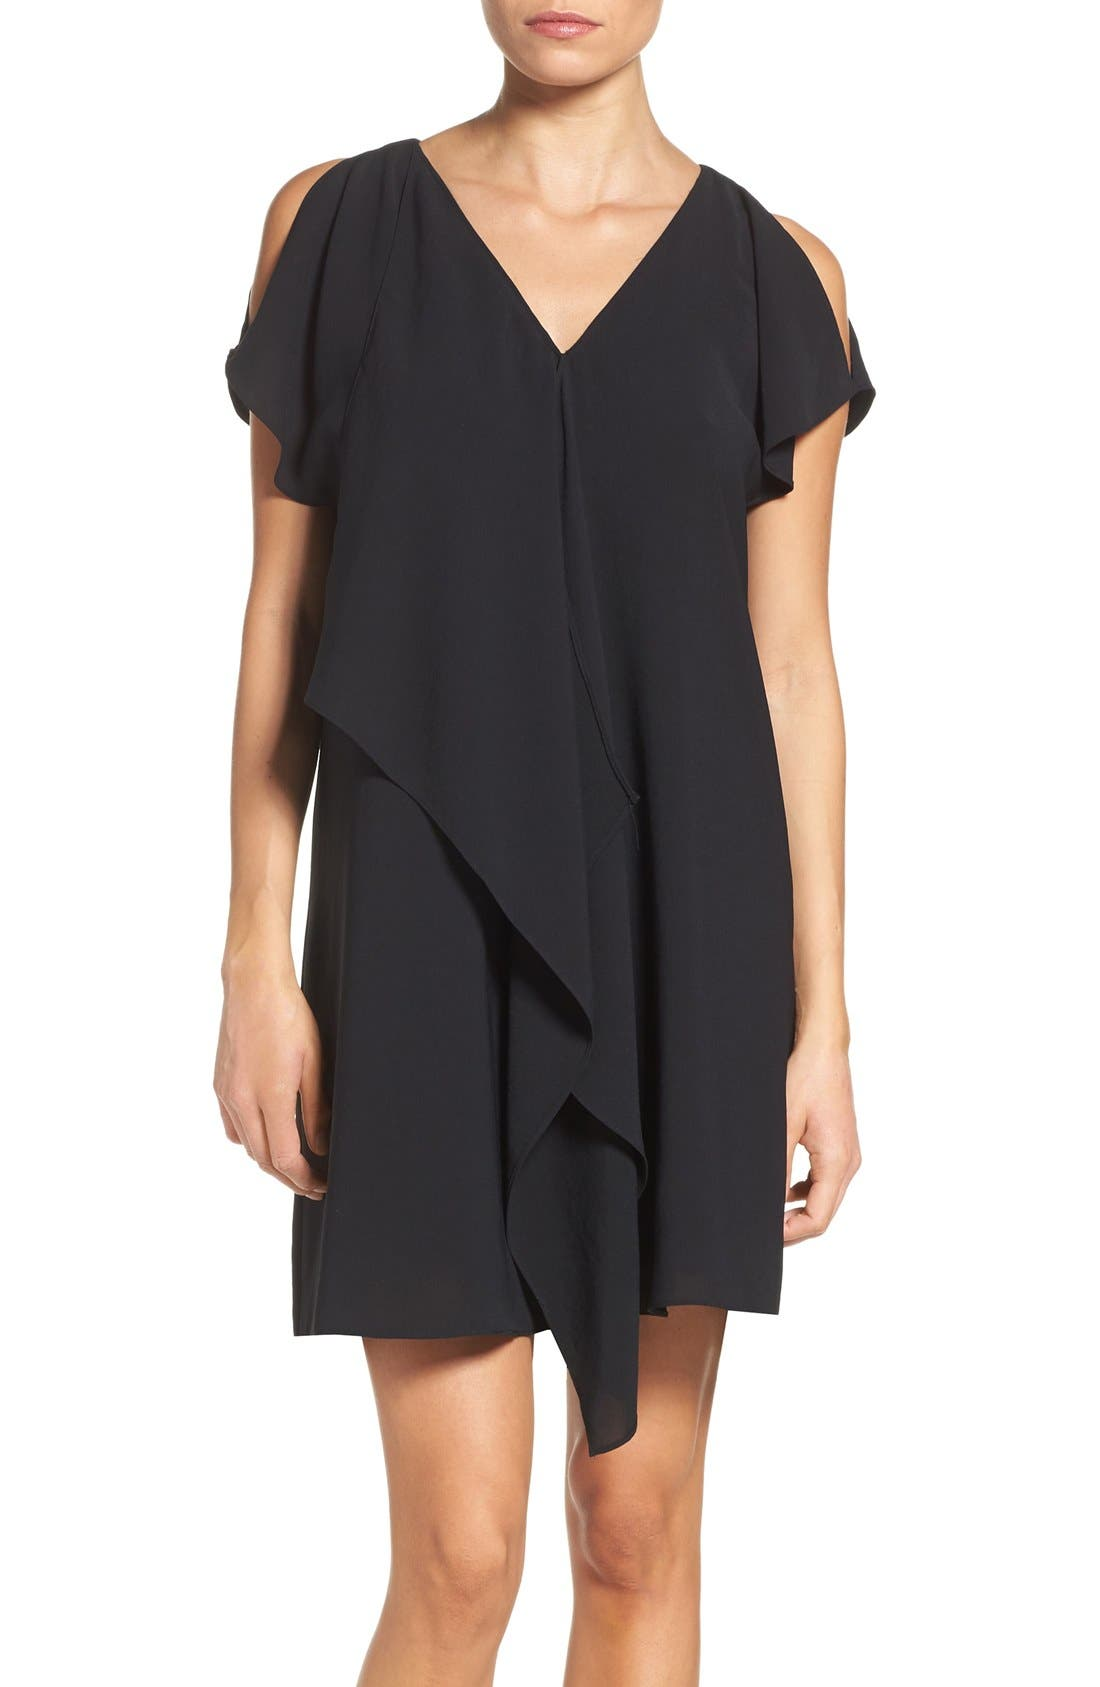 Alternate Image 1 Selected - Adrianna Papell Cold Shoulder Draped Shift Dress (Regular & Petite)